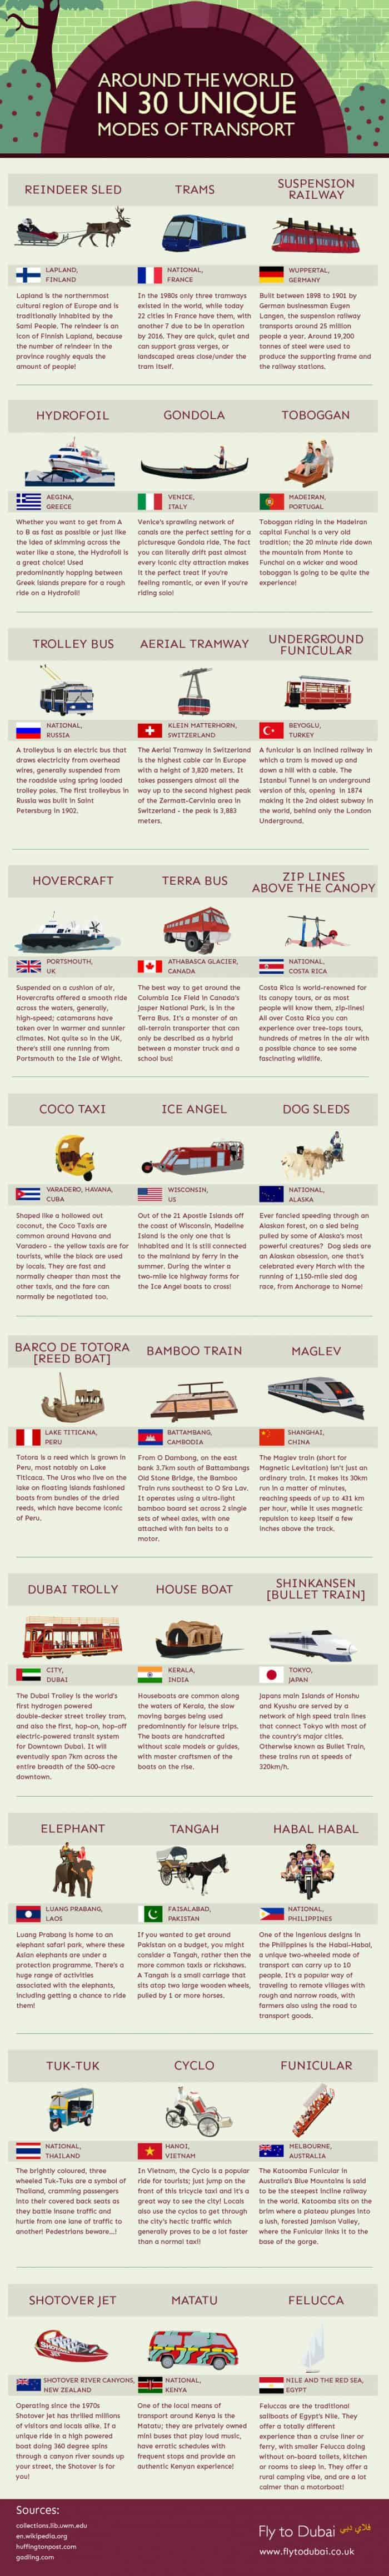 Transport from around the world